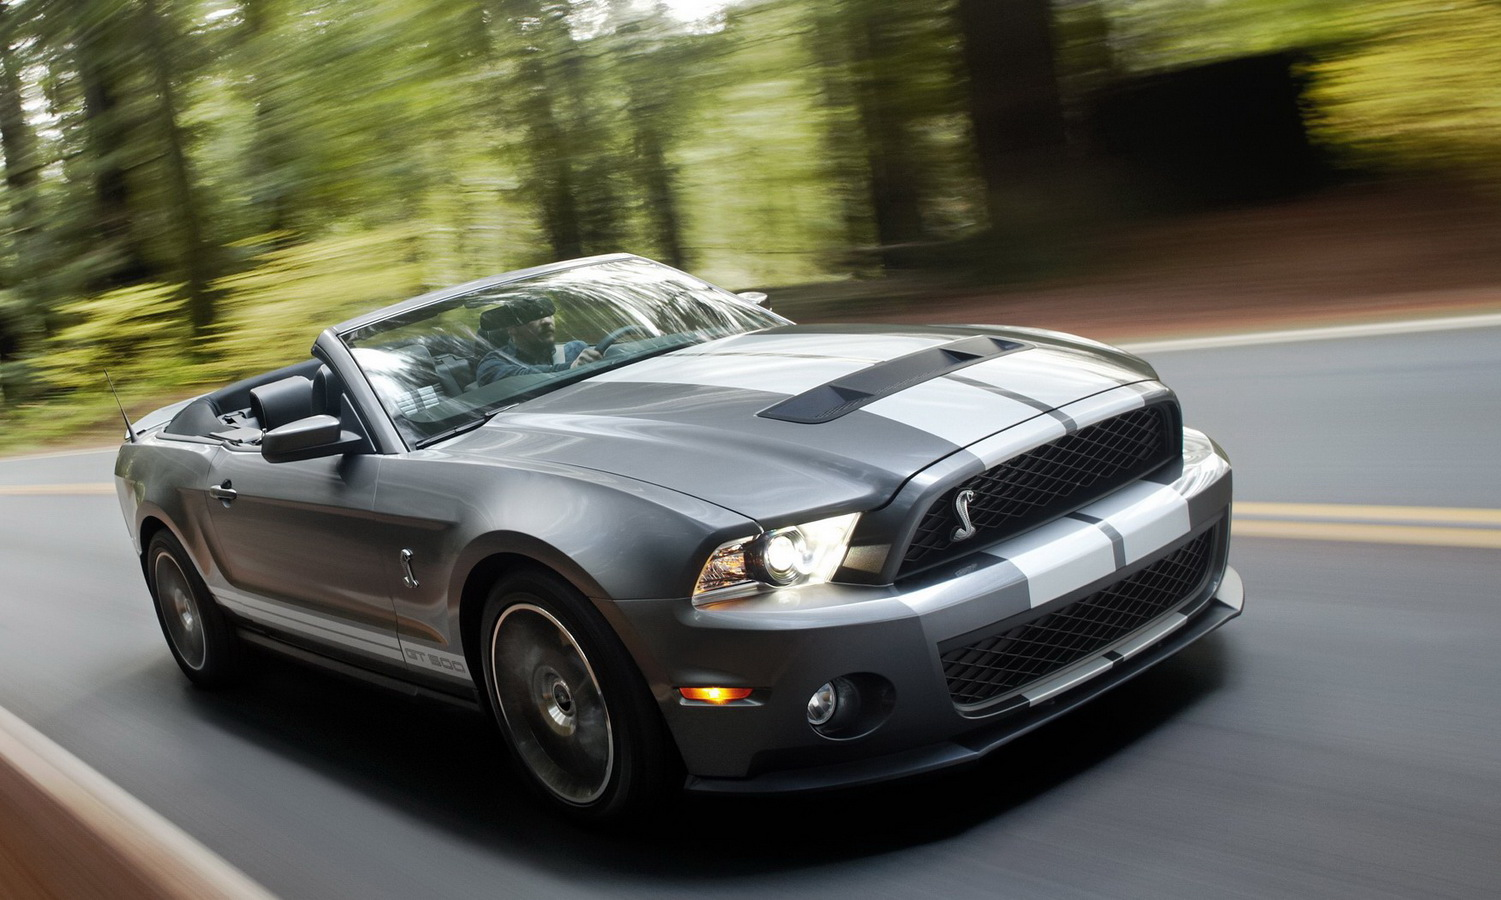 ford mustang shelby gt 500 conv photos news reviews specs car listings. Black Bedroom Furniture Sets. Home Design Ideas